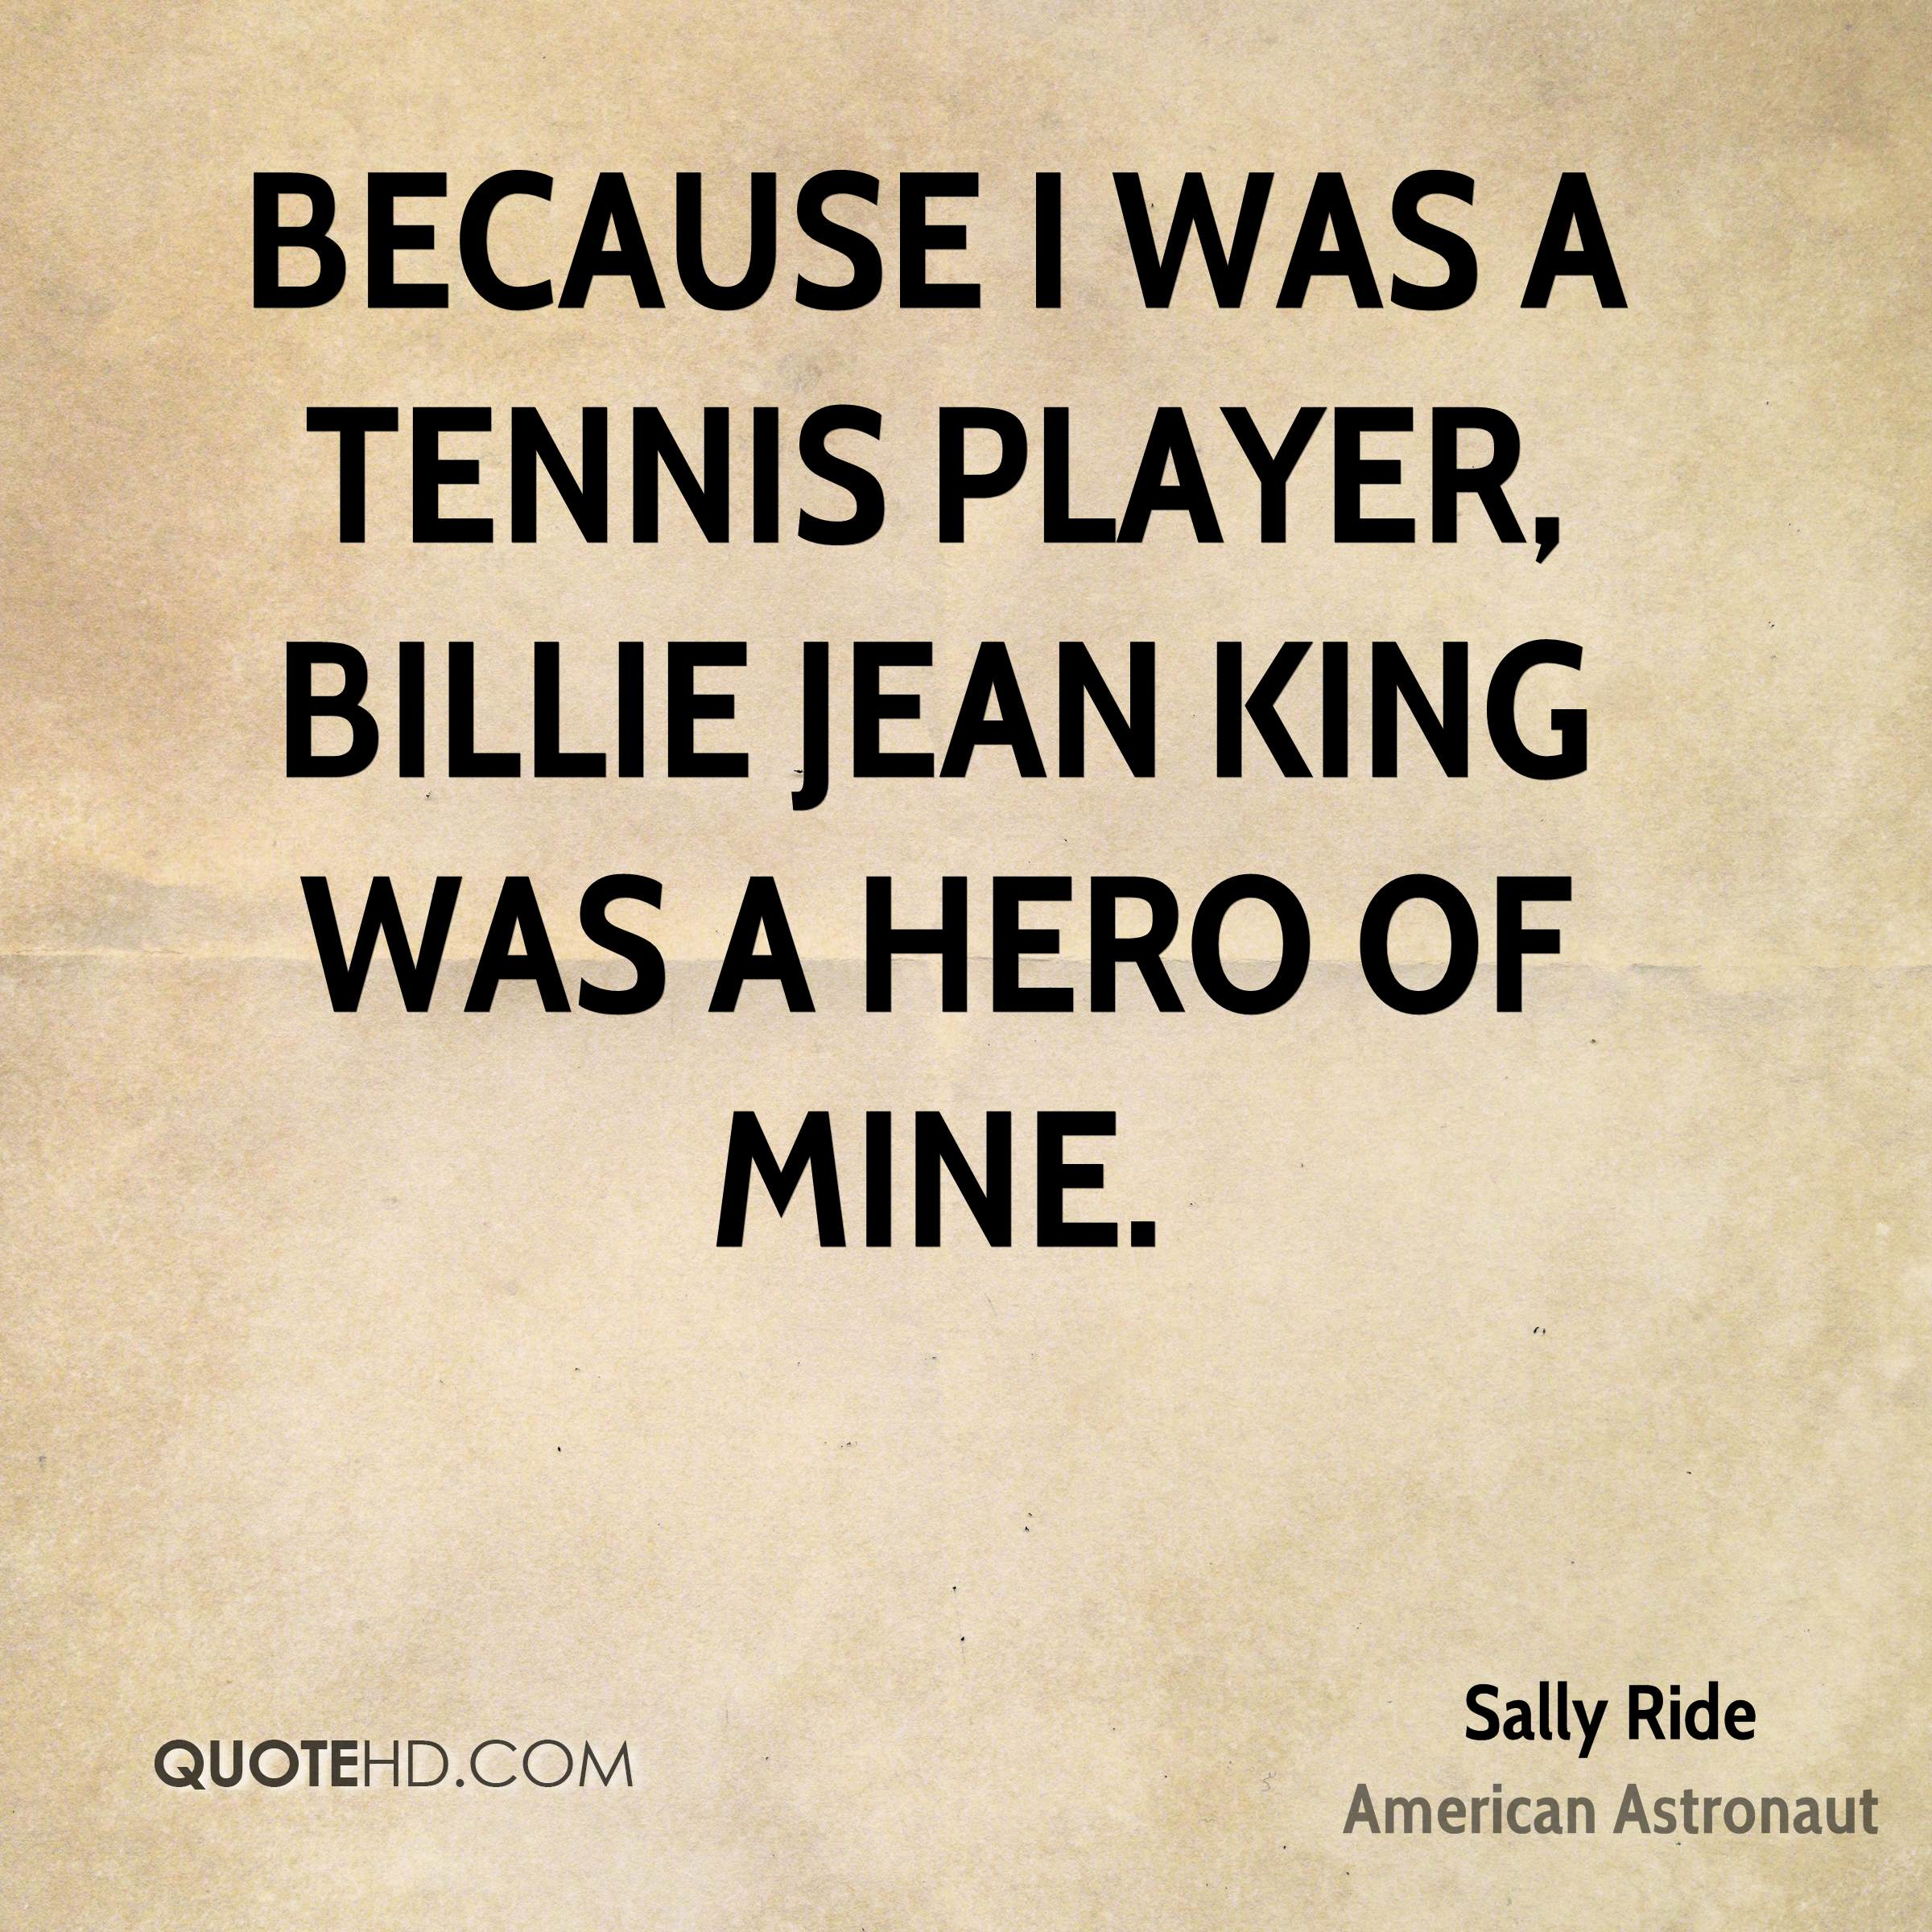 Because I was a tennis player, Billie Jean King was a hero of mine.